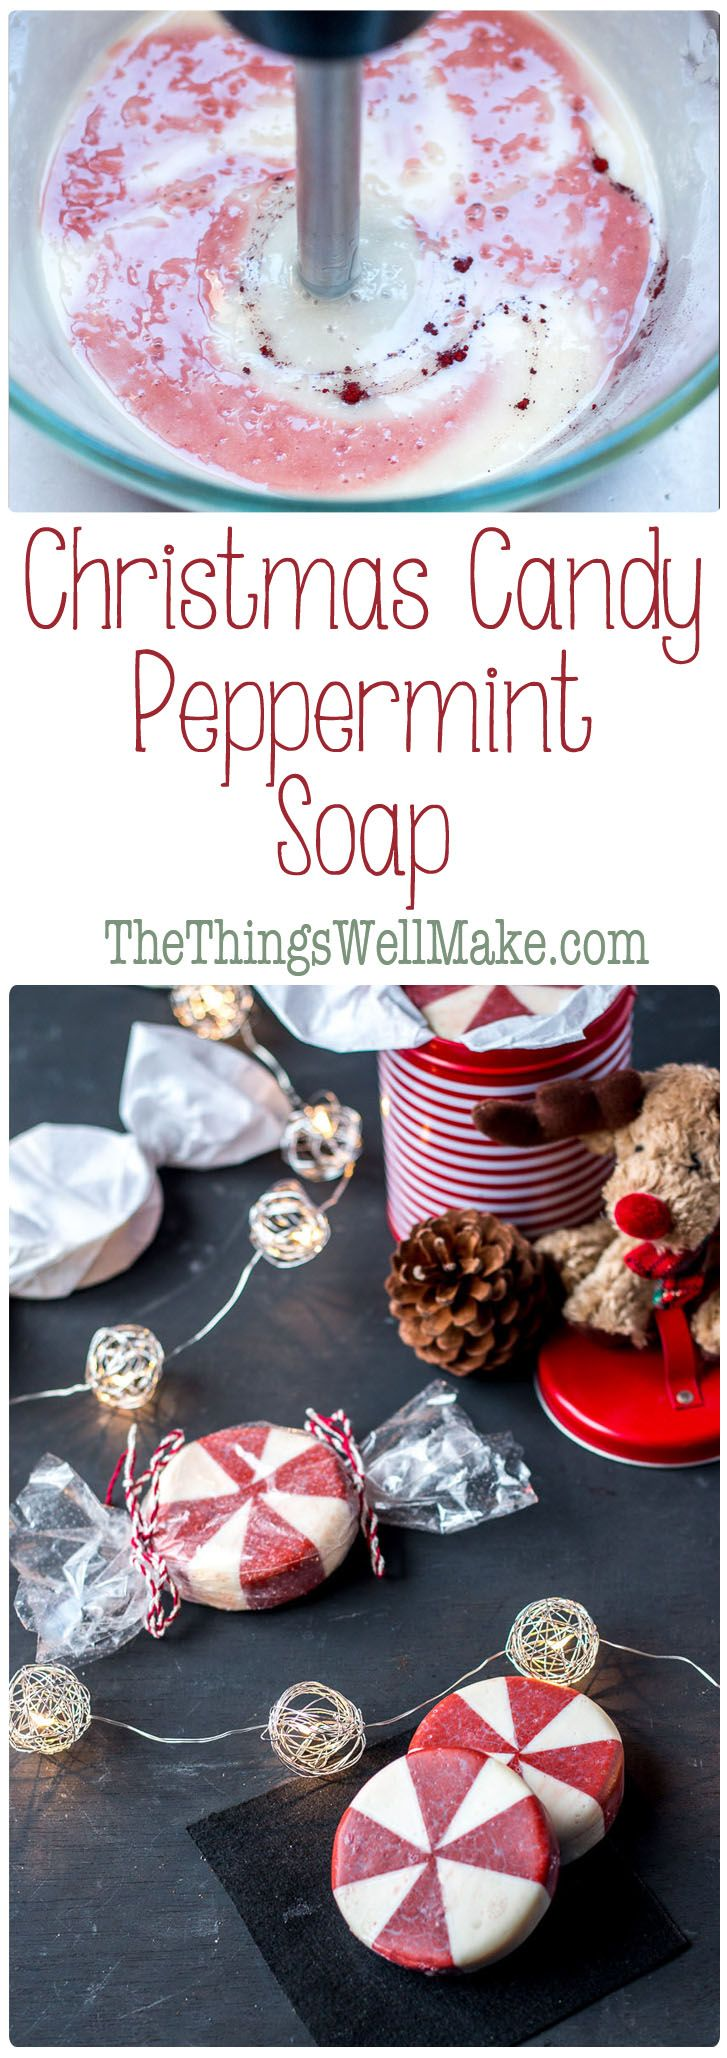 This fun holiday peppermint soap looks like peppermint candy and it's perfect for Christmas time, but can also be enjoyed year round. (Diy Soap)